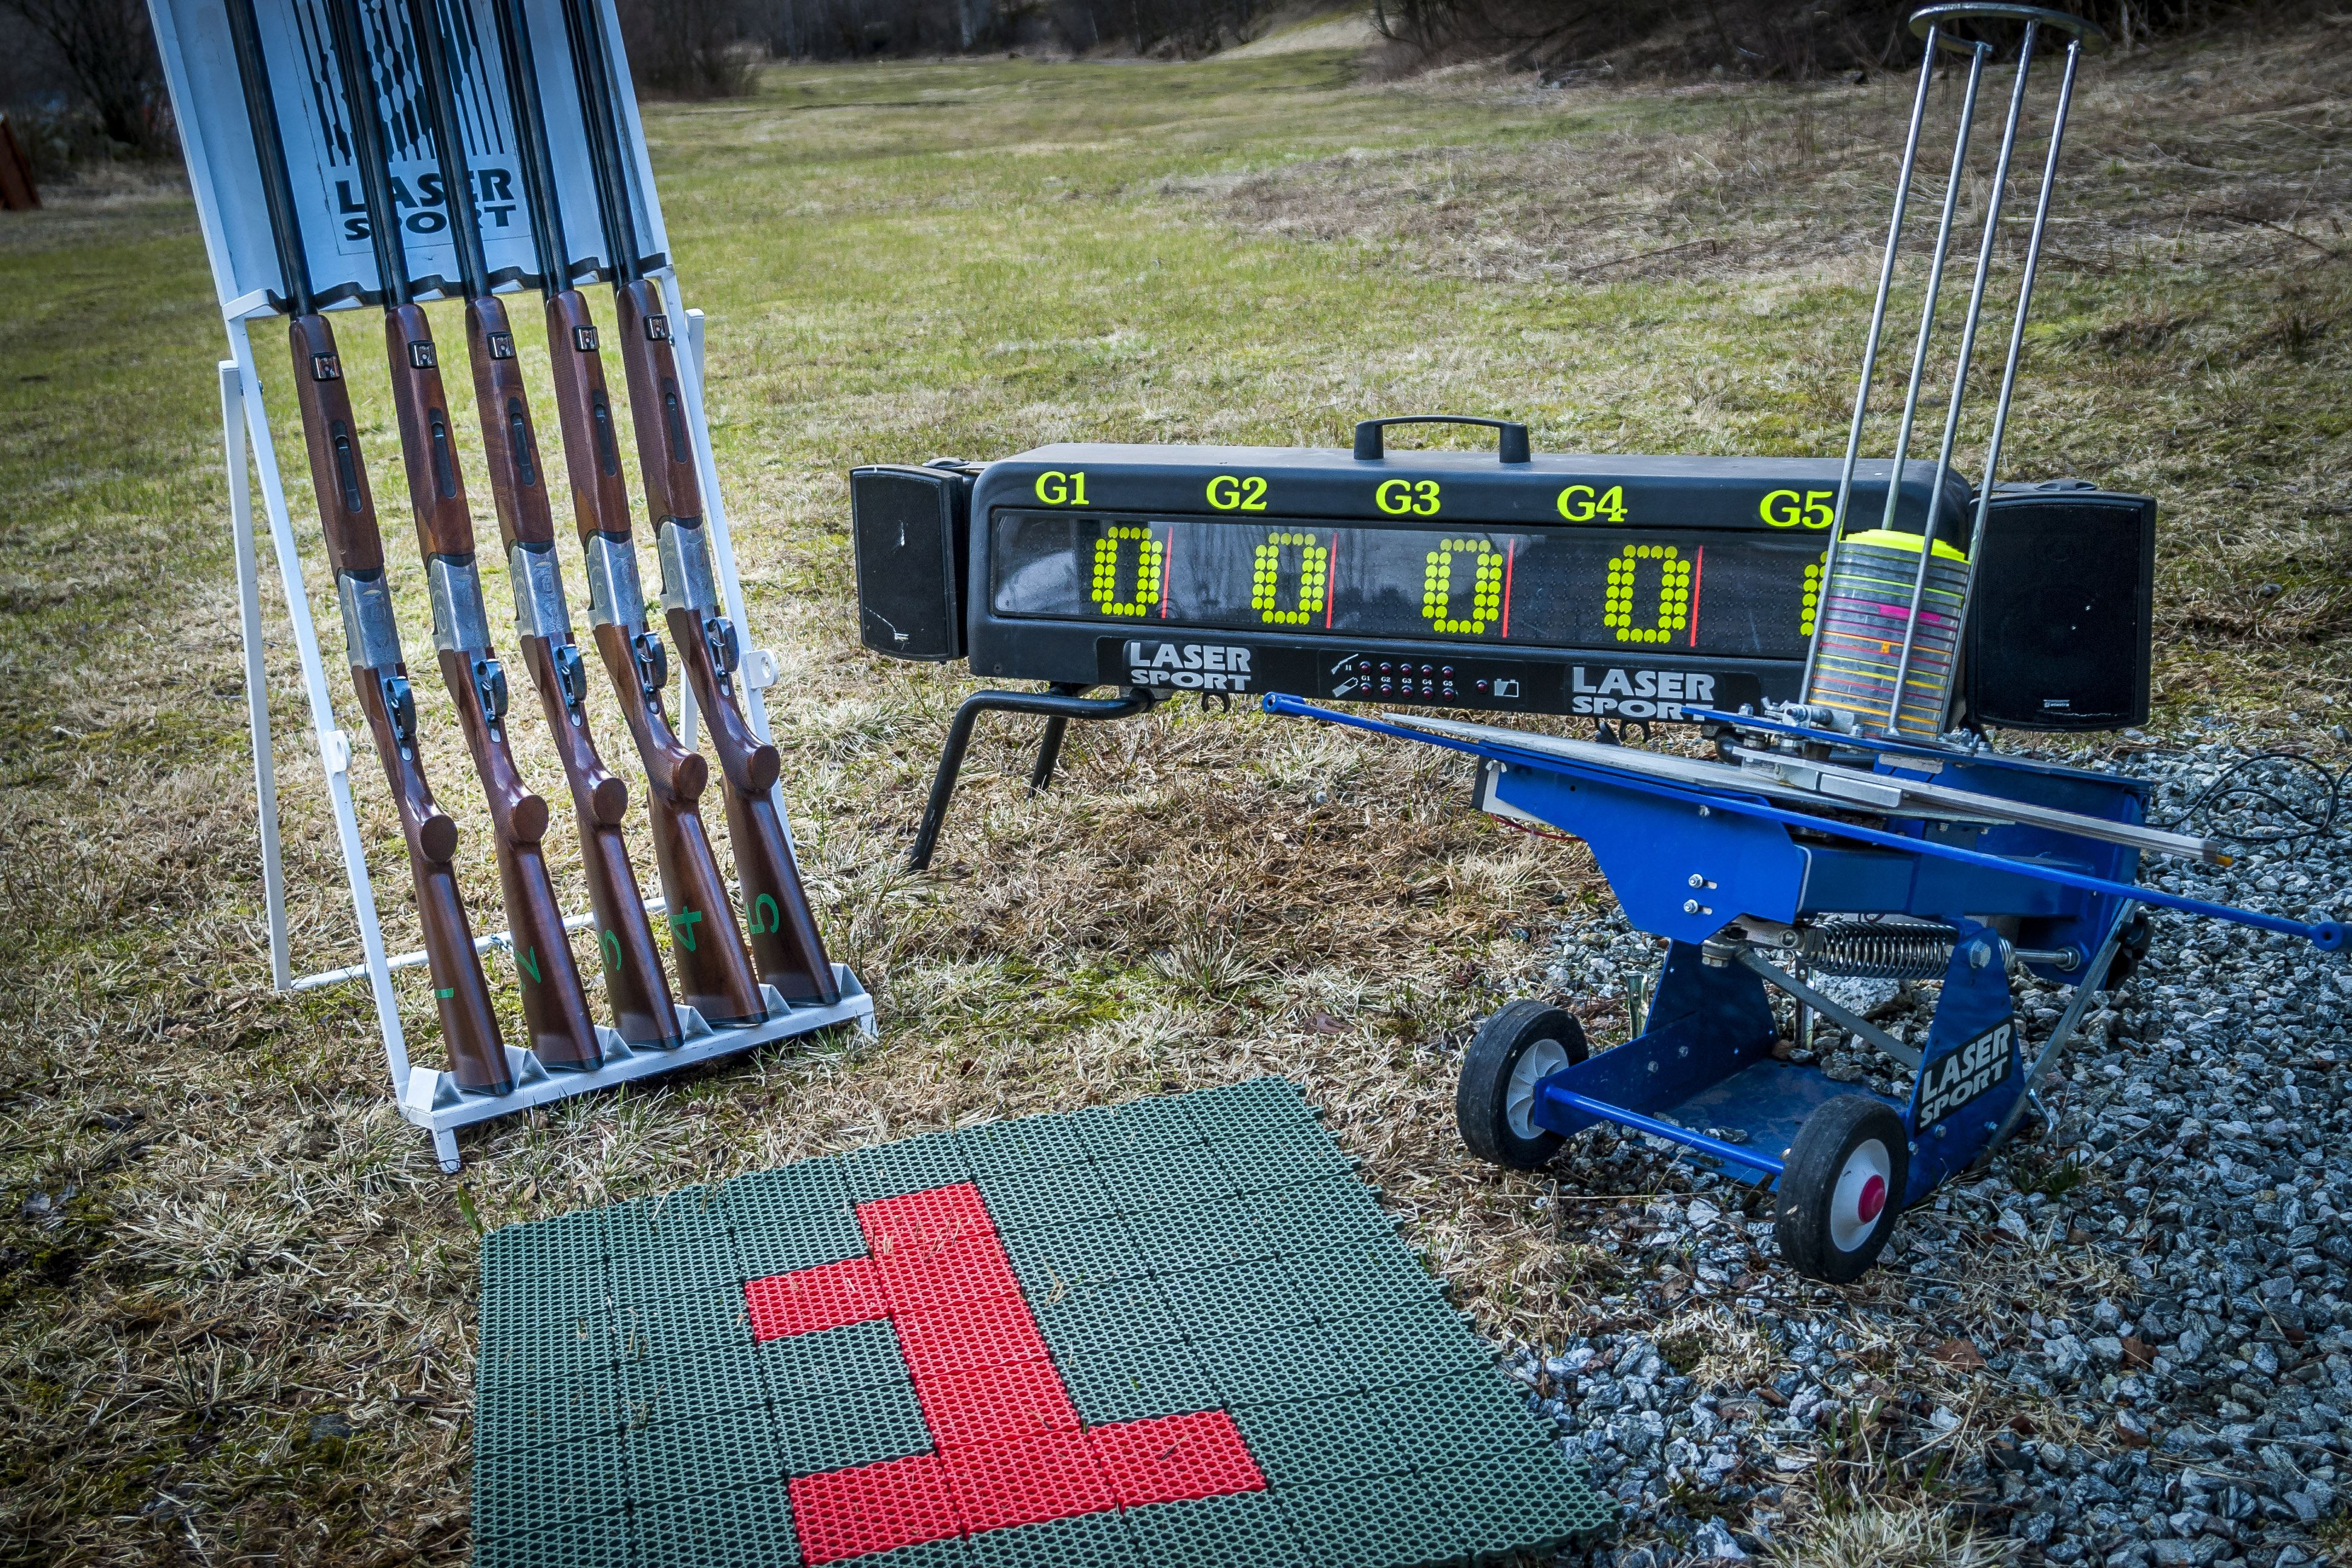 Lasersport skeet shooting for a group of 5 persons